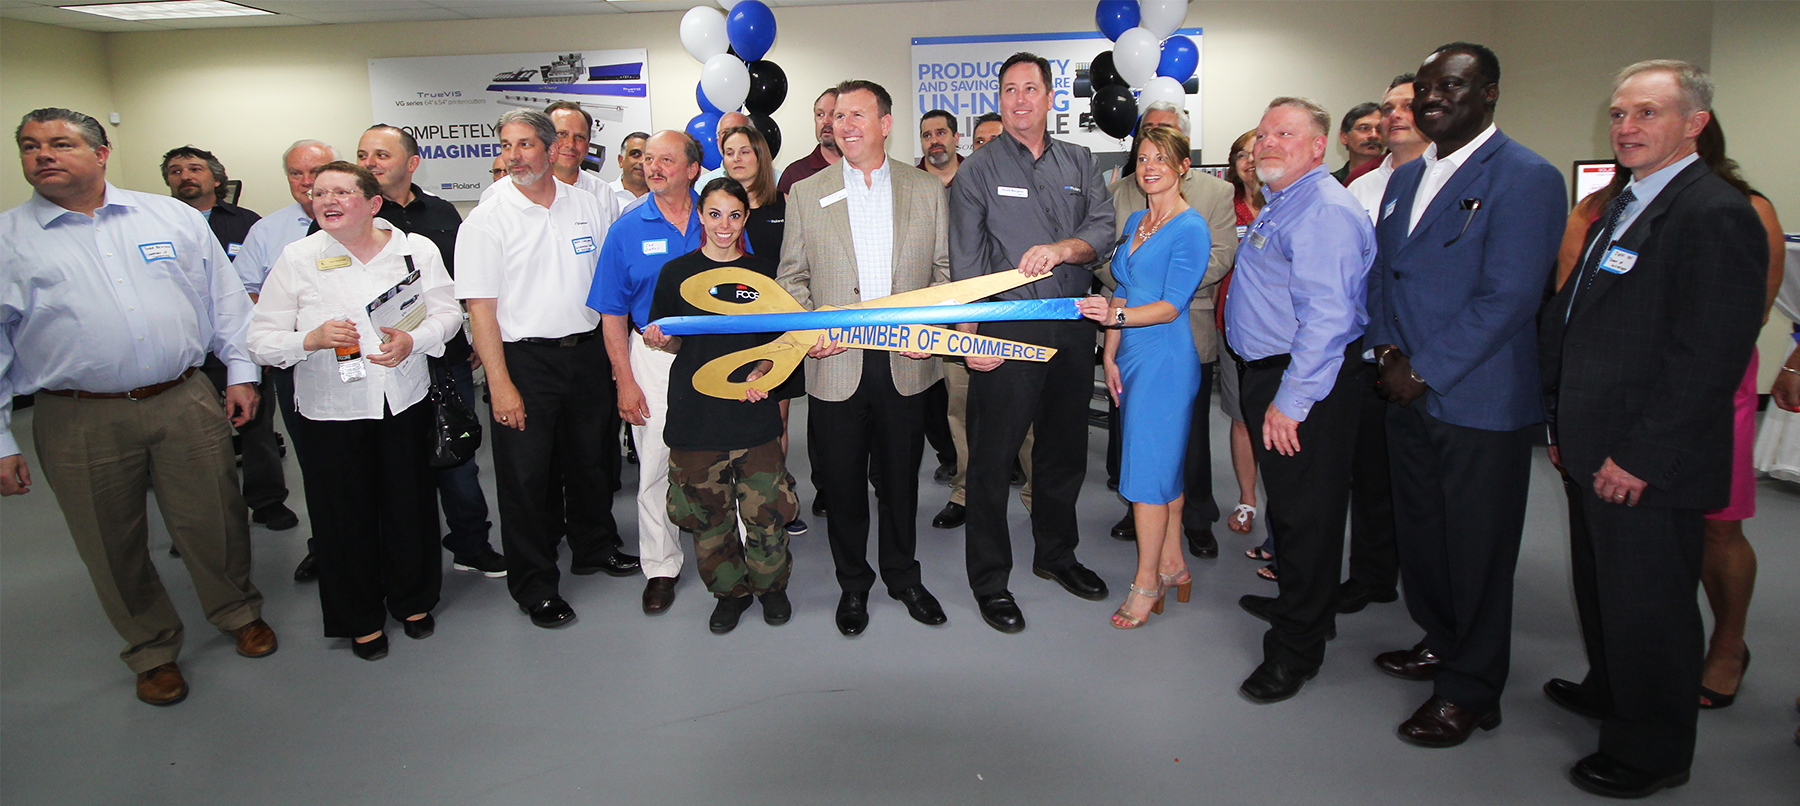 Ribbon-cutting ceremony at Grand Opening ceremony for Roland DGA's new East Coast Imagination Center